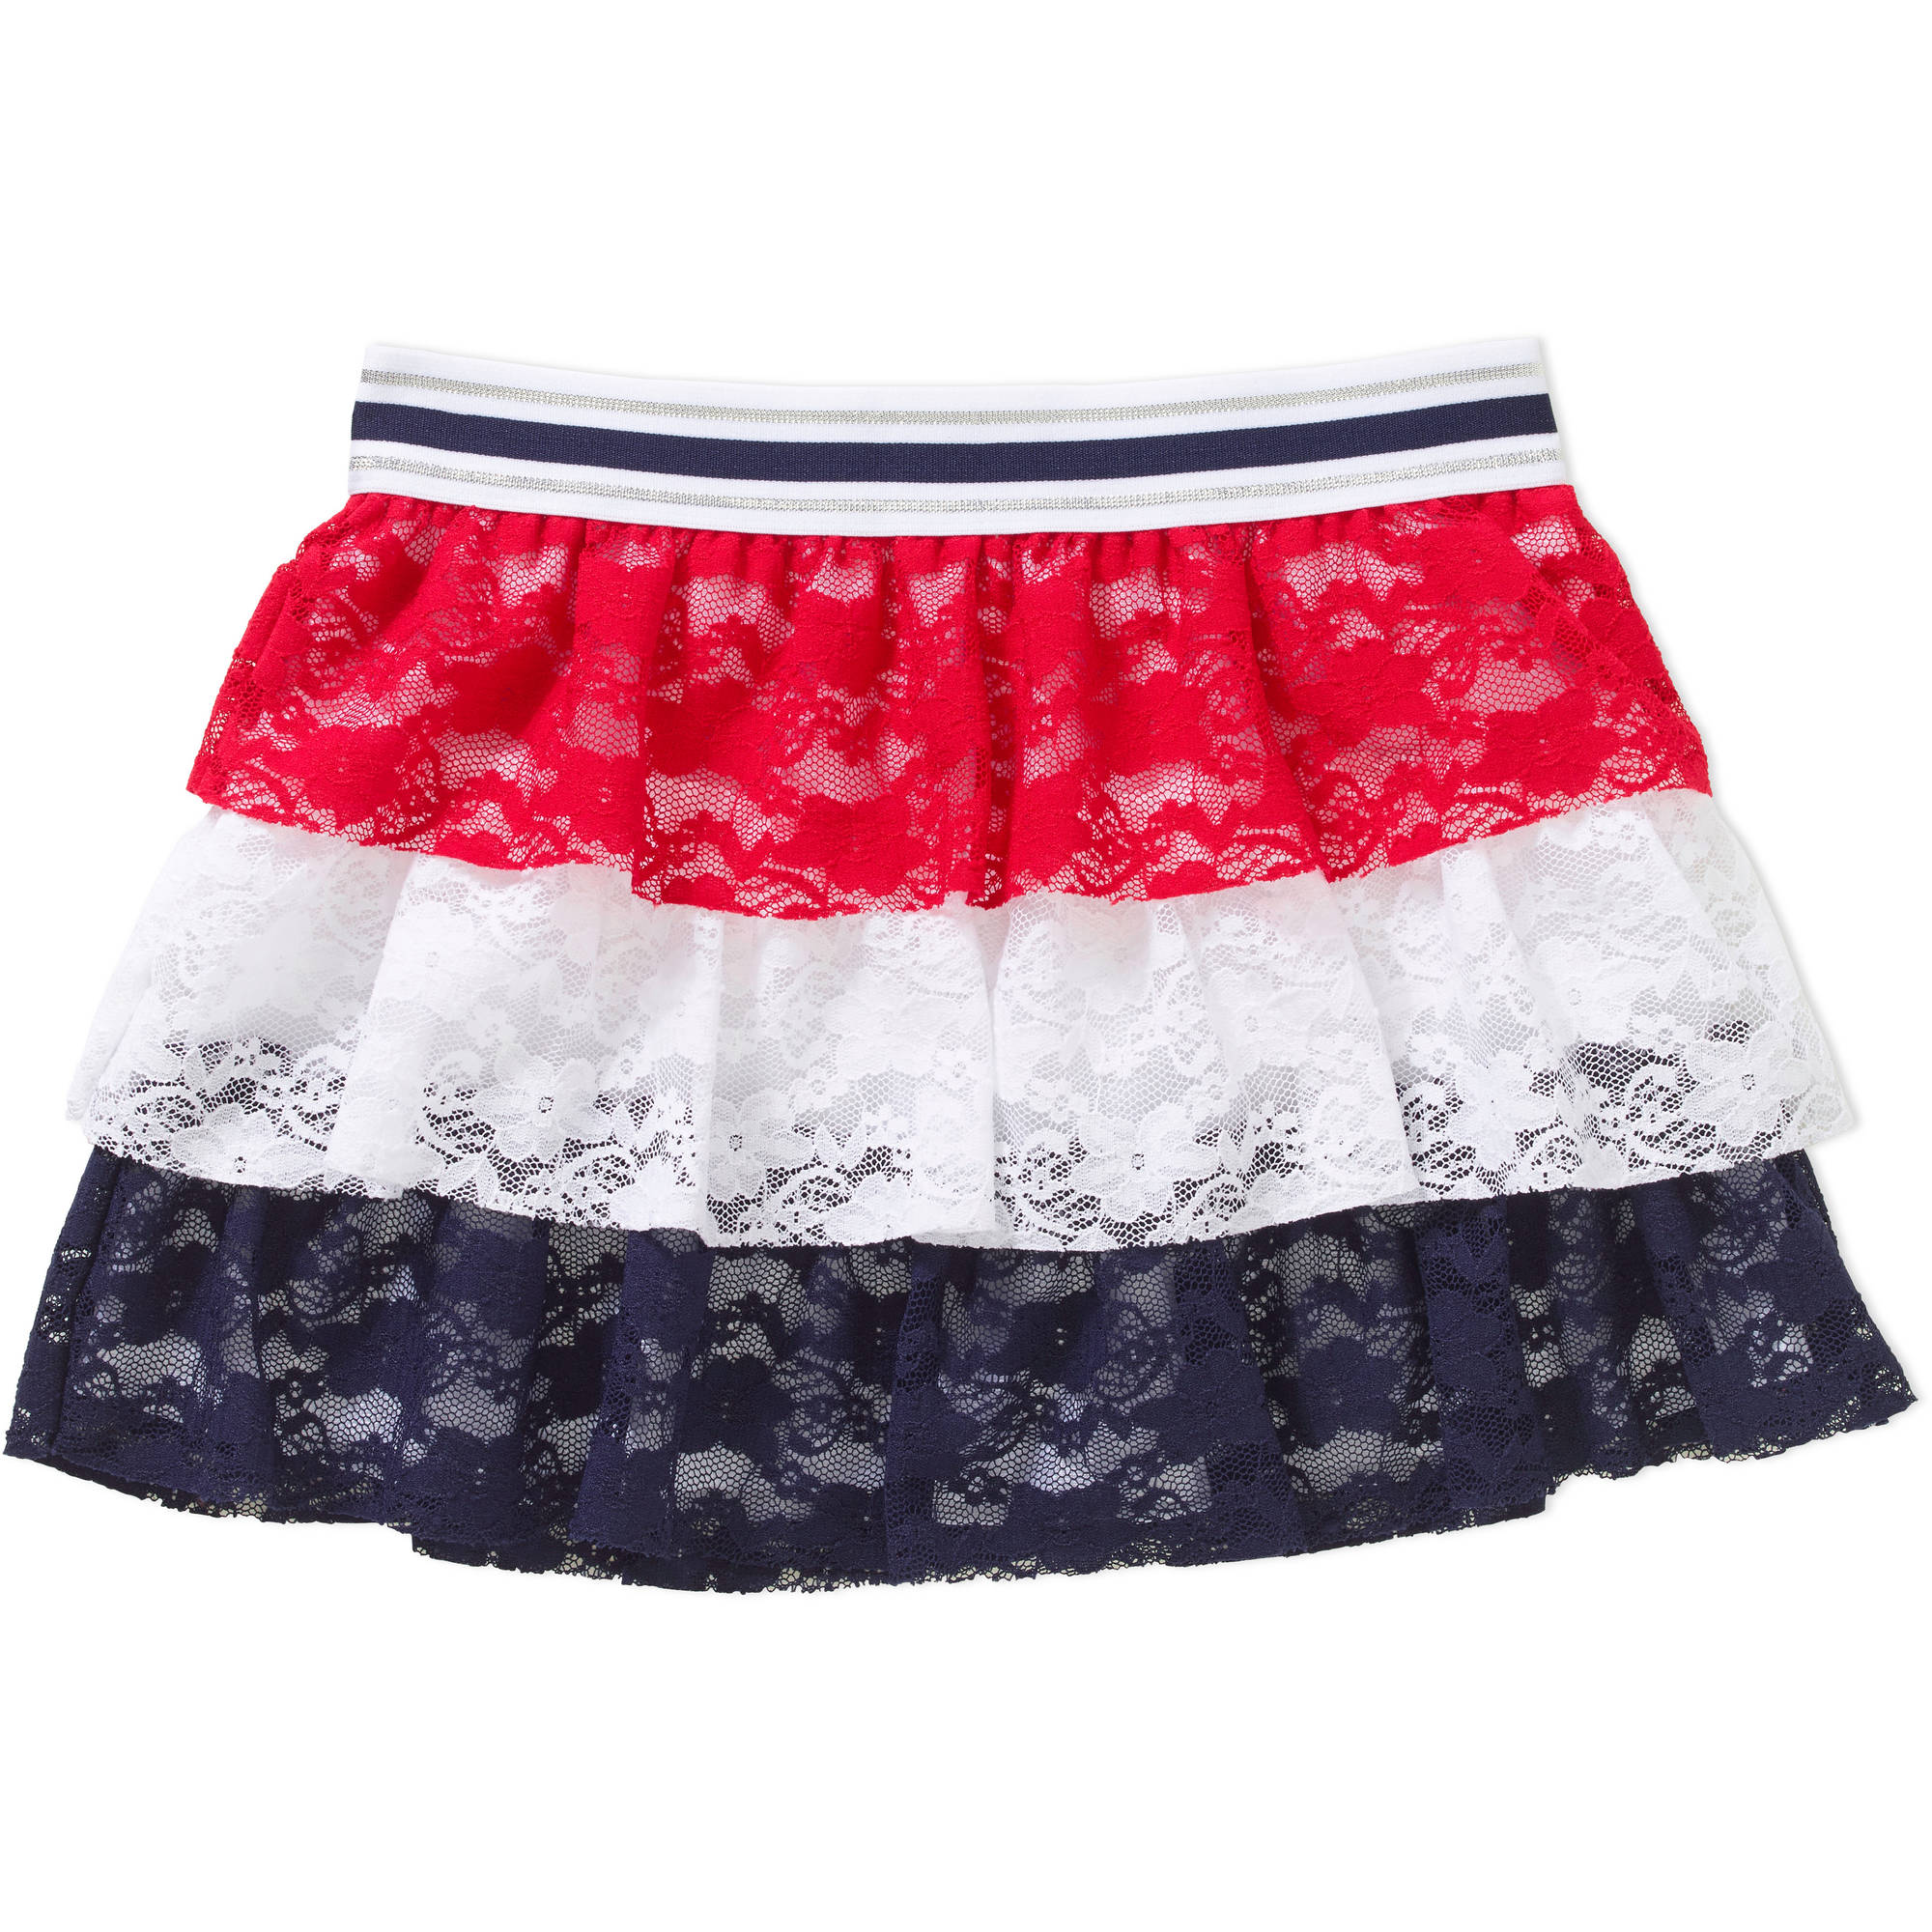 Girl's Americana Lace 3 Tier Skirt